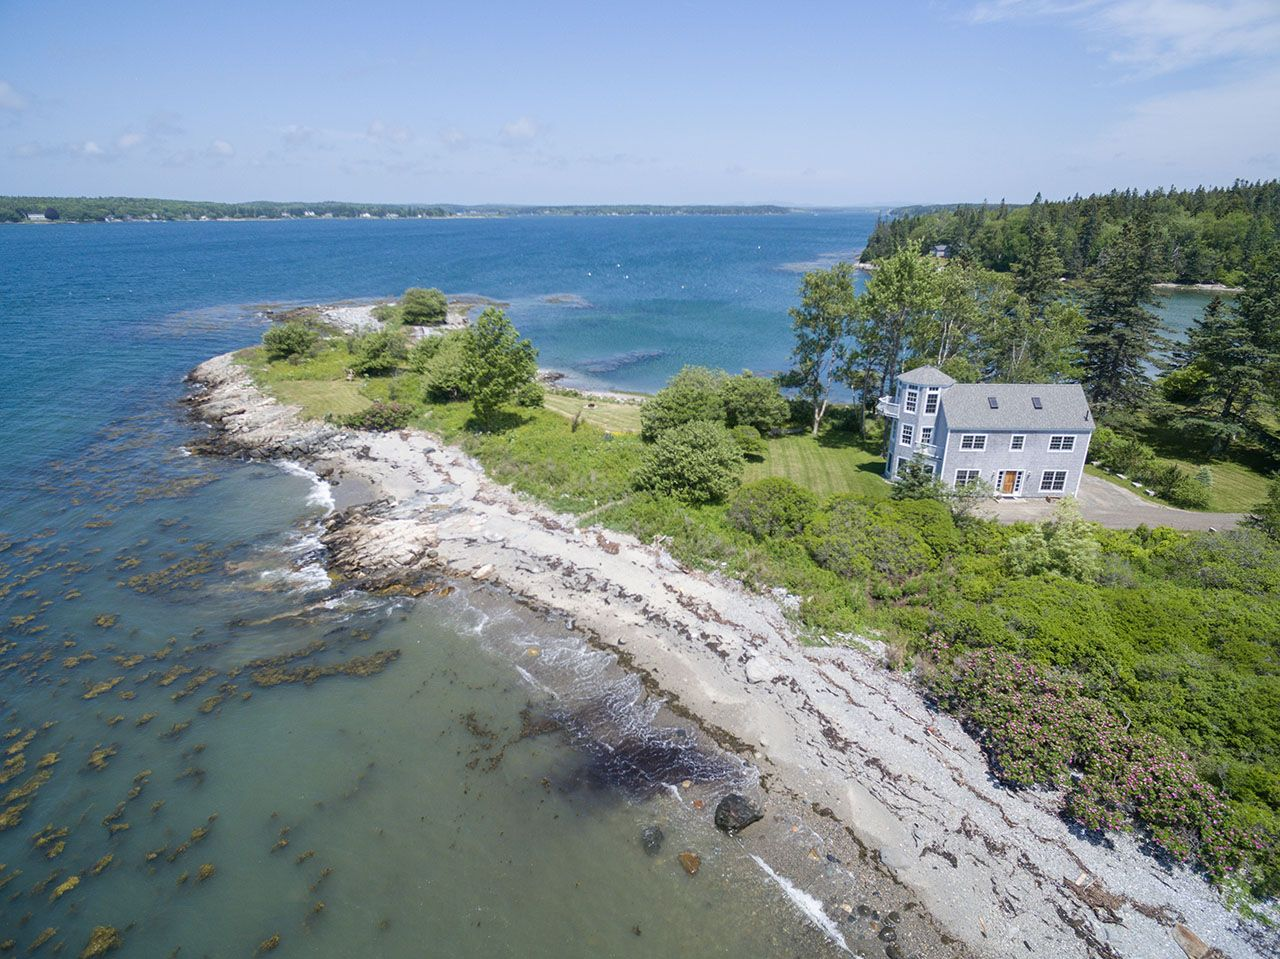 Villa per Vendita alle ore Crazy Point Lane 13 Crazy Point Lane St. George, Maine,04860 Stati Uniti